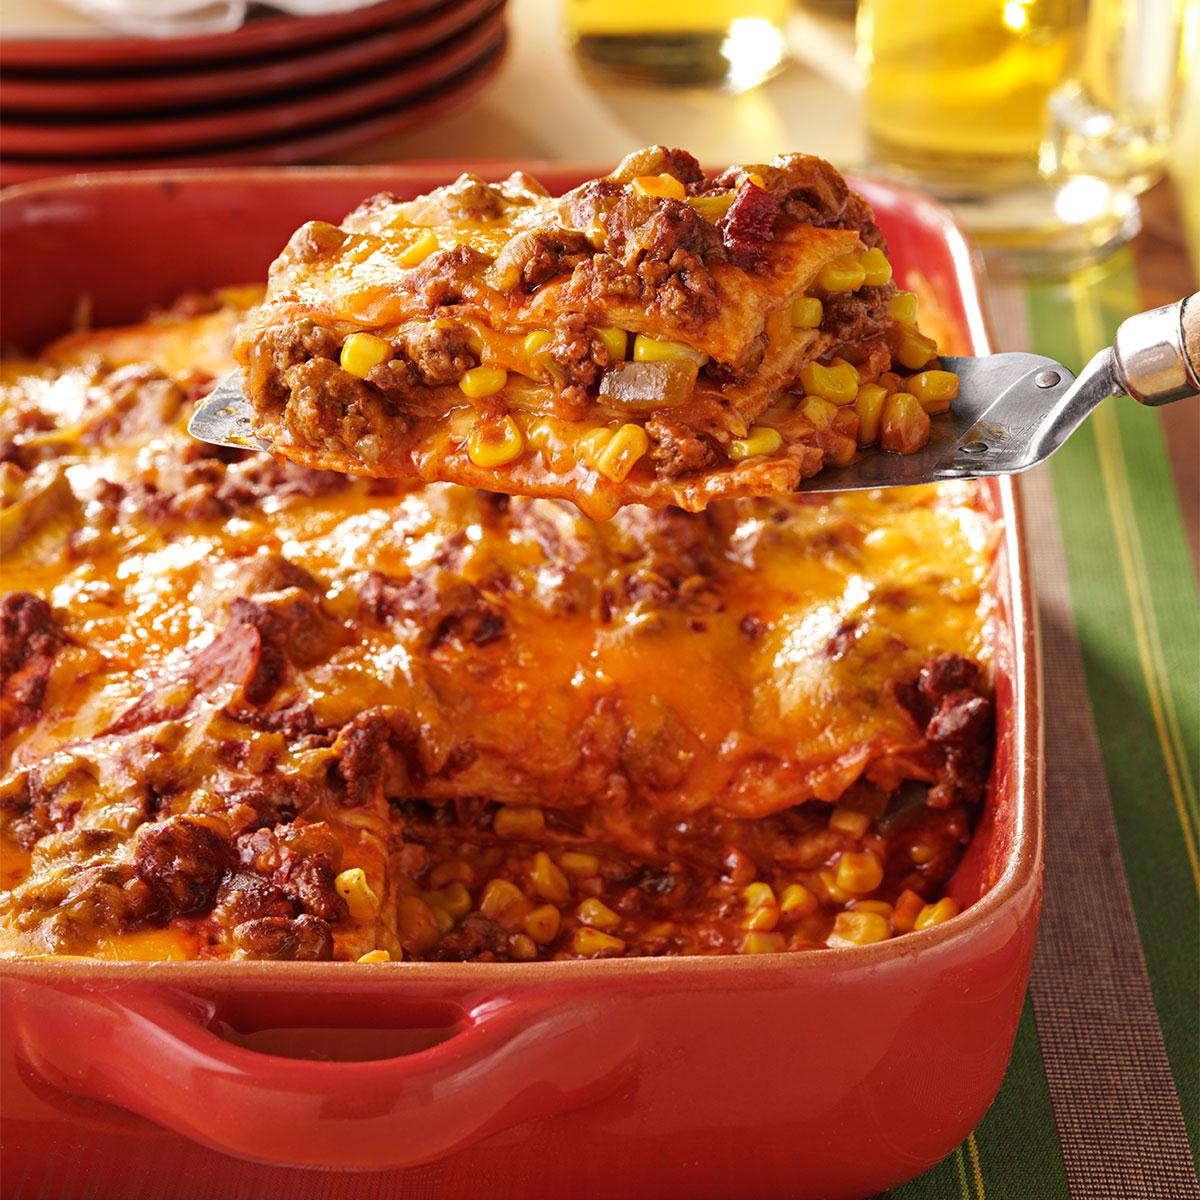 10 Best Mexican Red Enchilada Sauce Recipes - Yummly